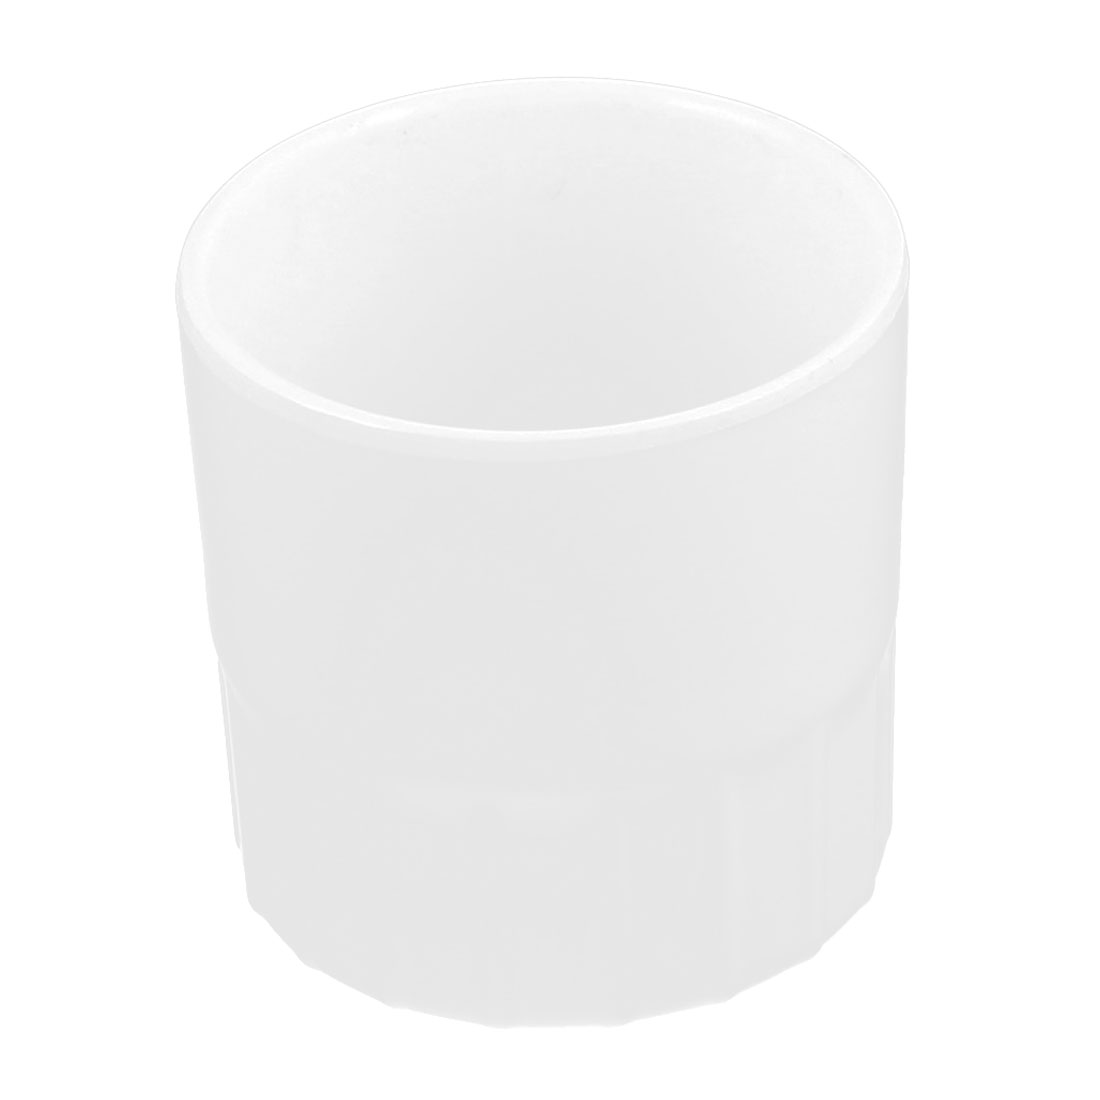 Restaurant Beverage Tea Wine Water Drinking Cup Mug White